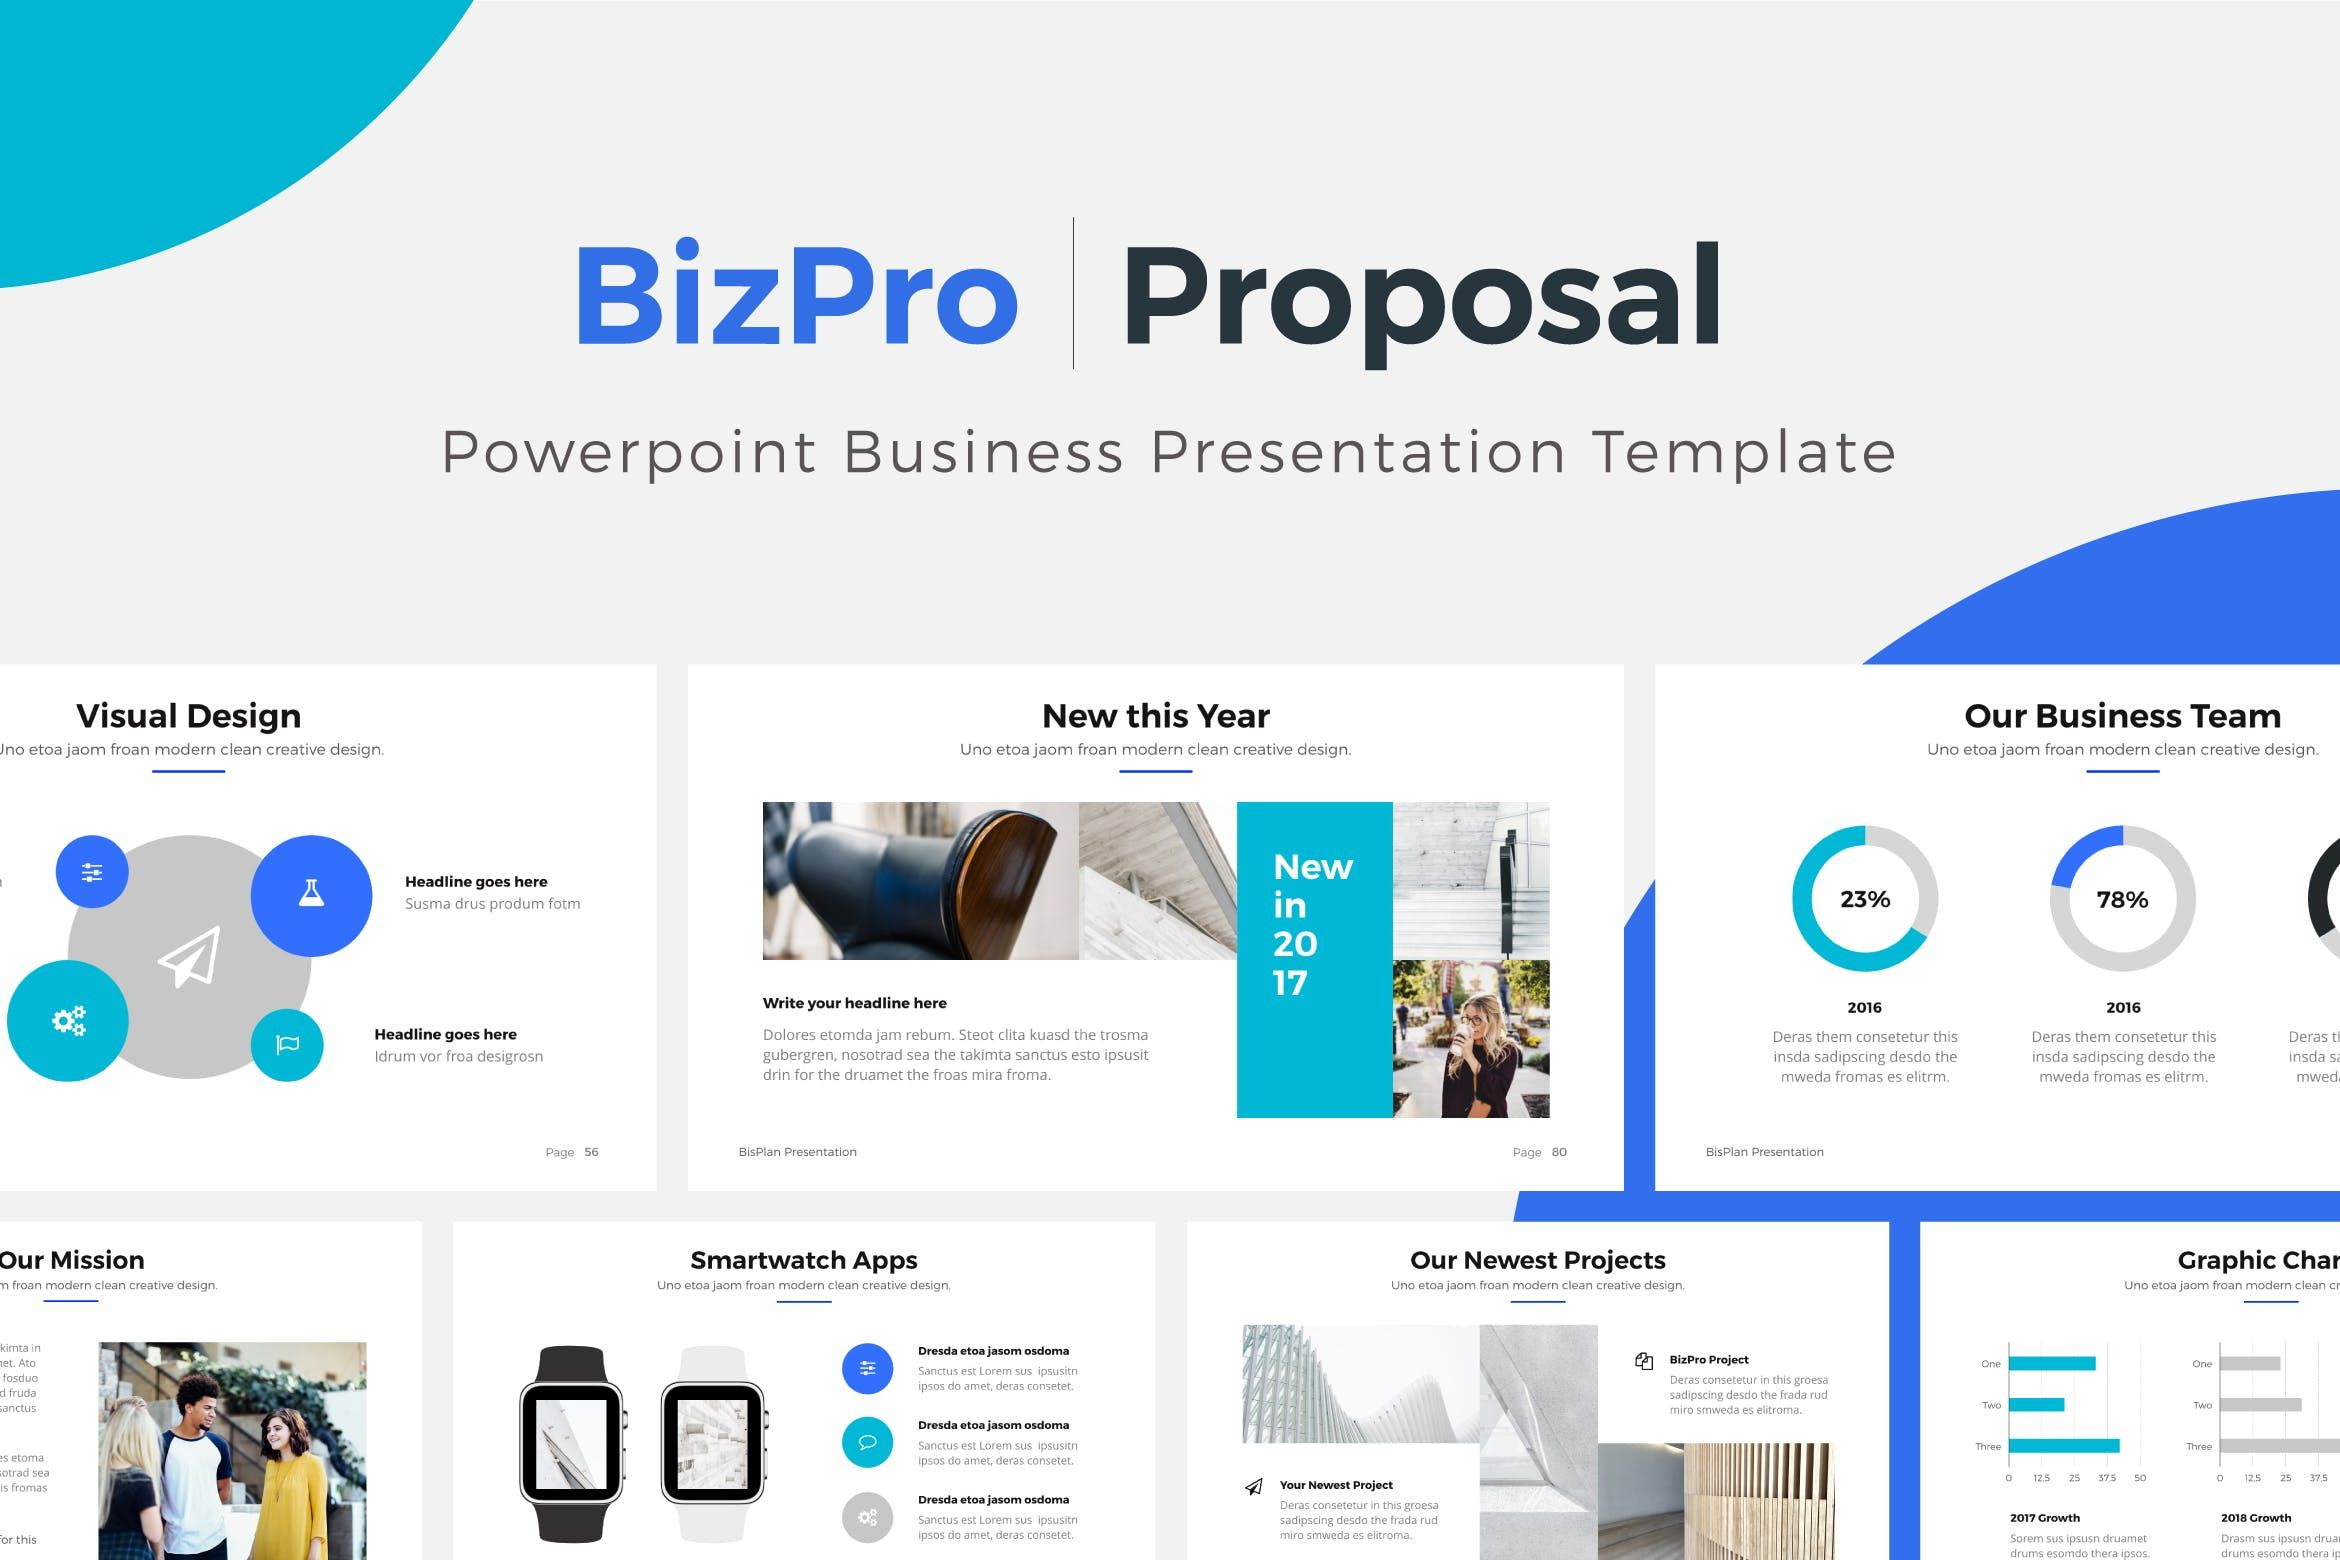 bizpro powerpoint proposal template presentation